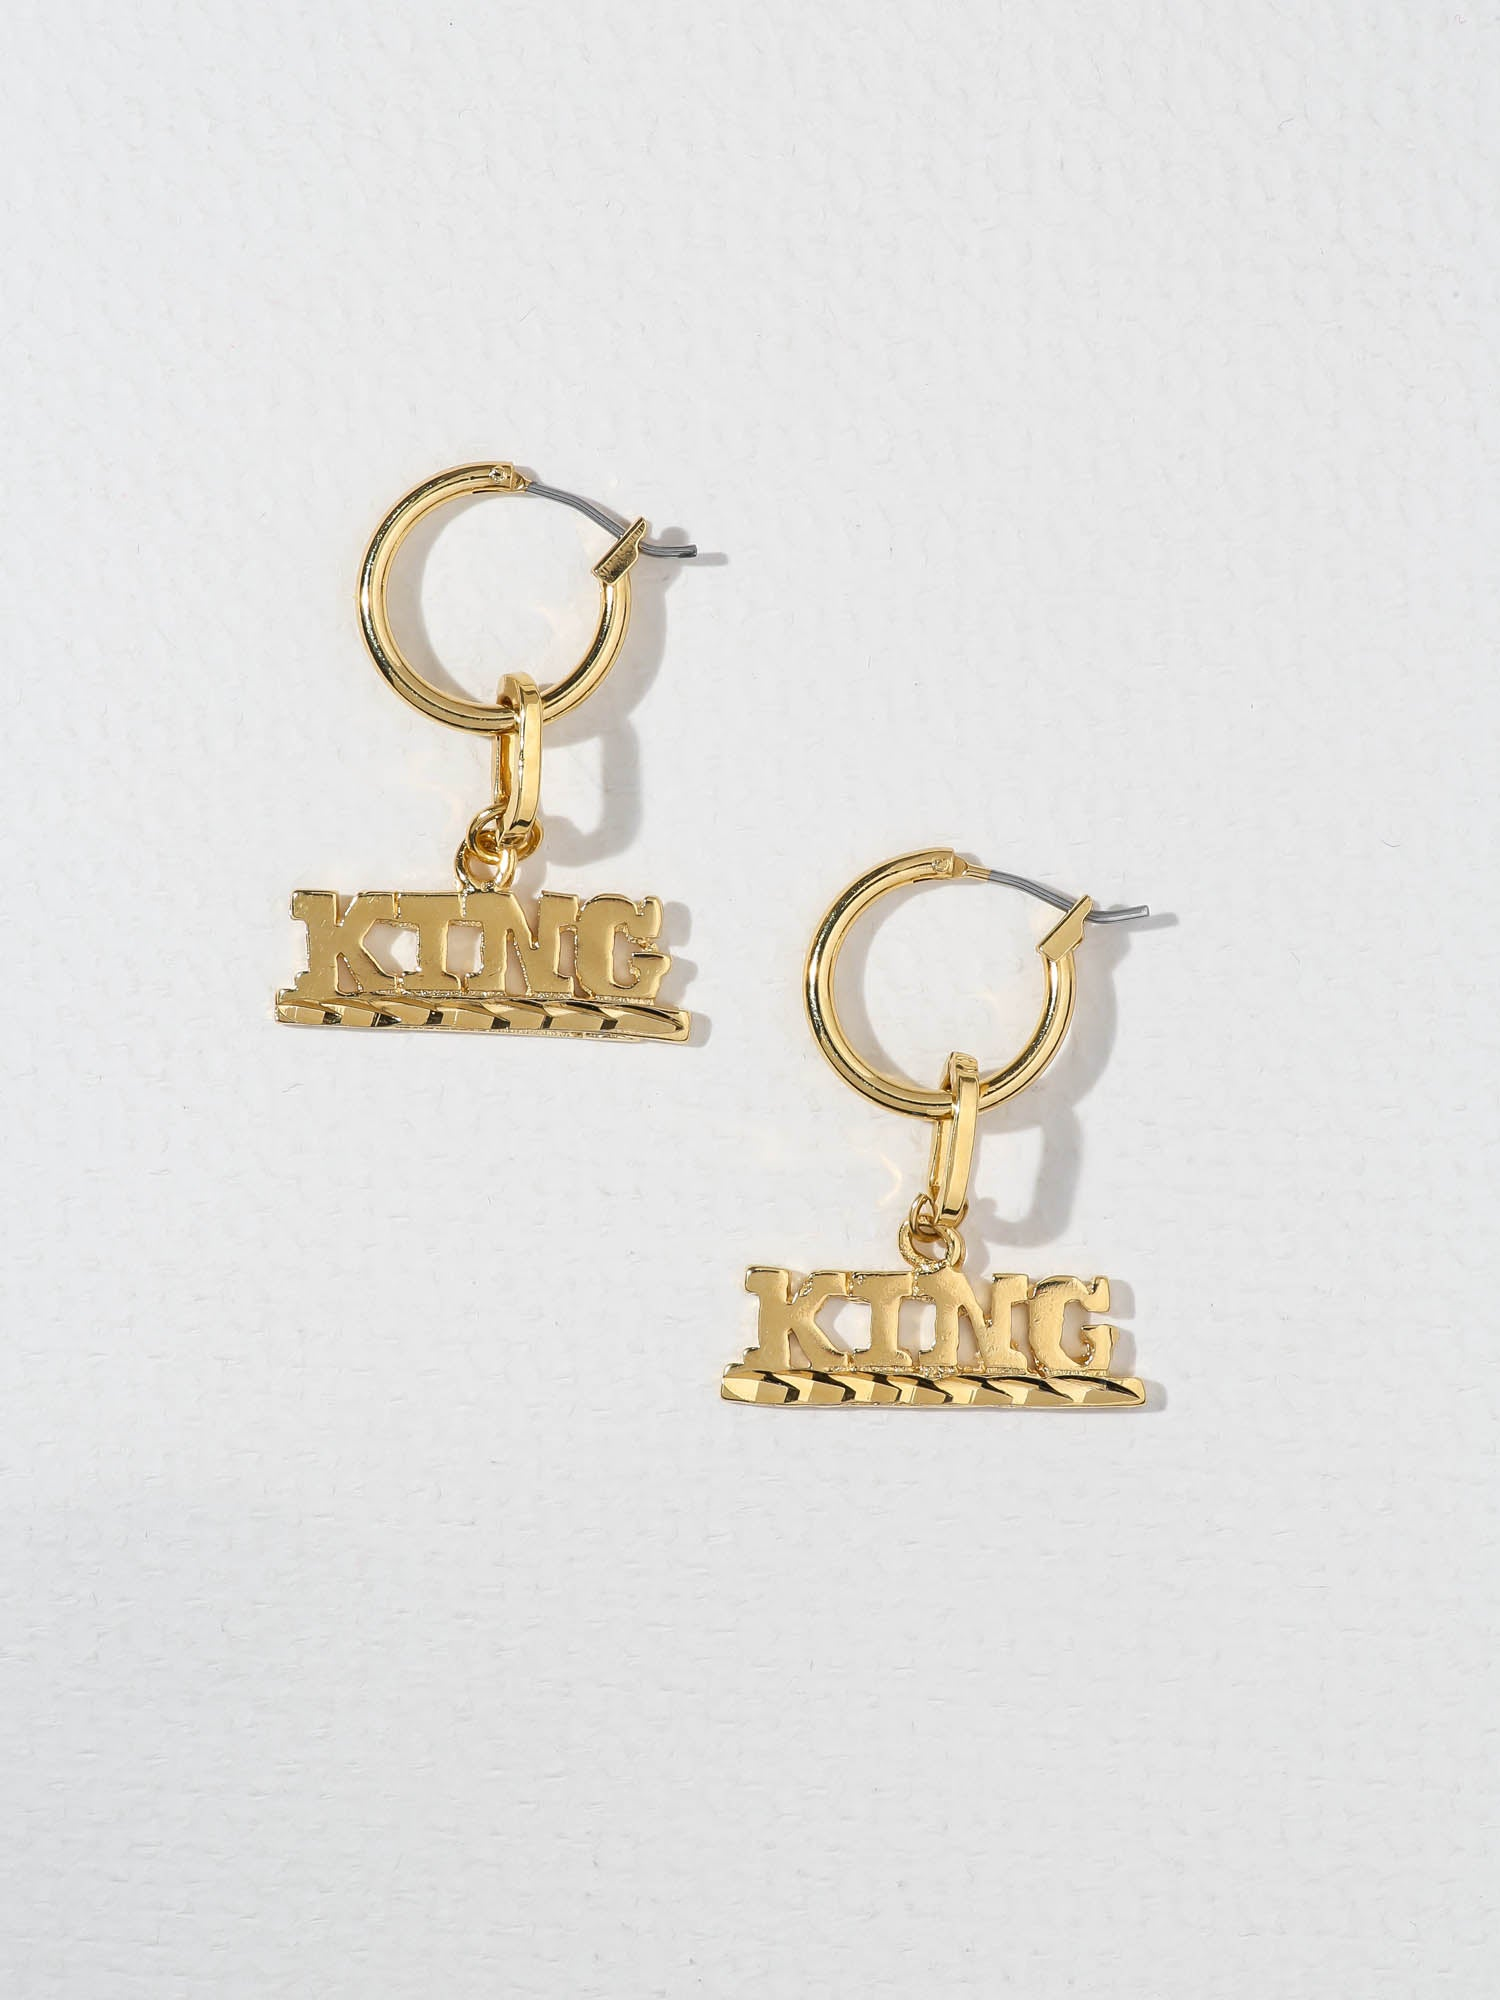 The King Earrings